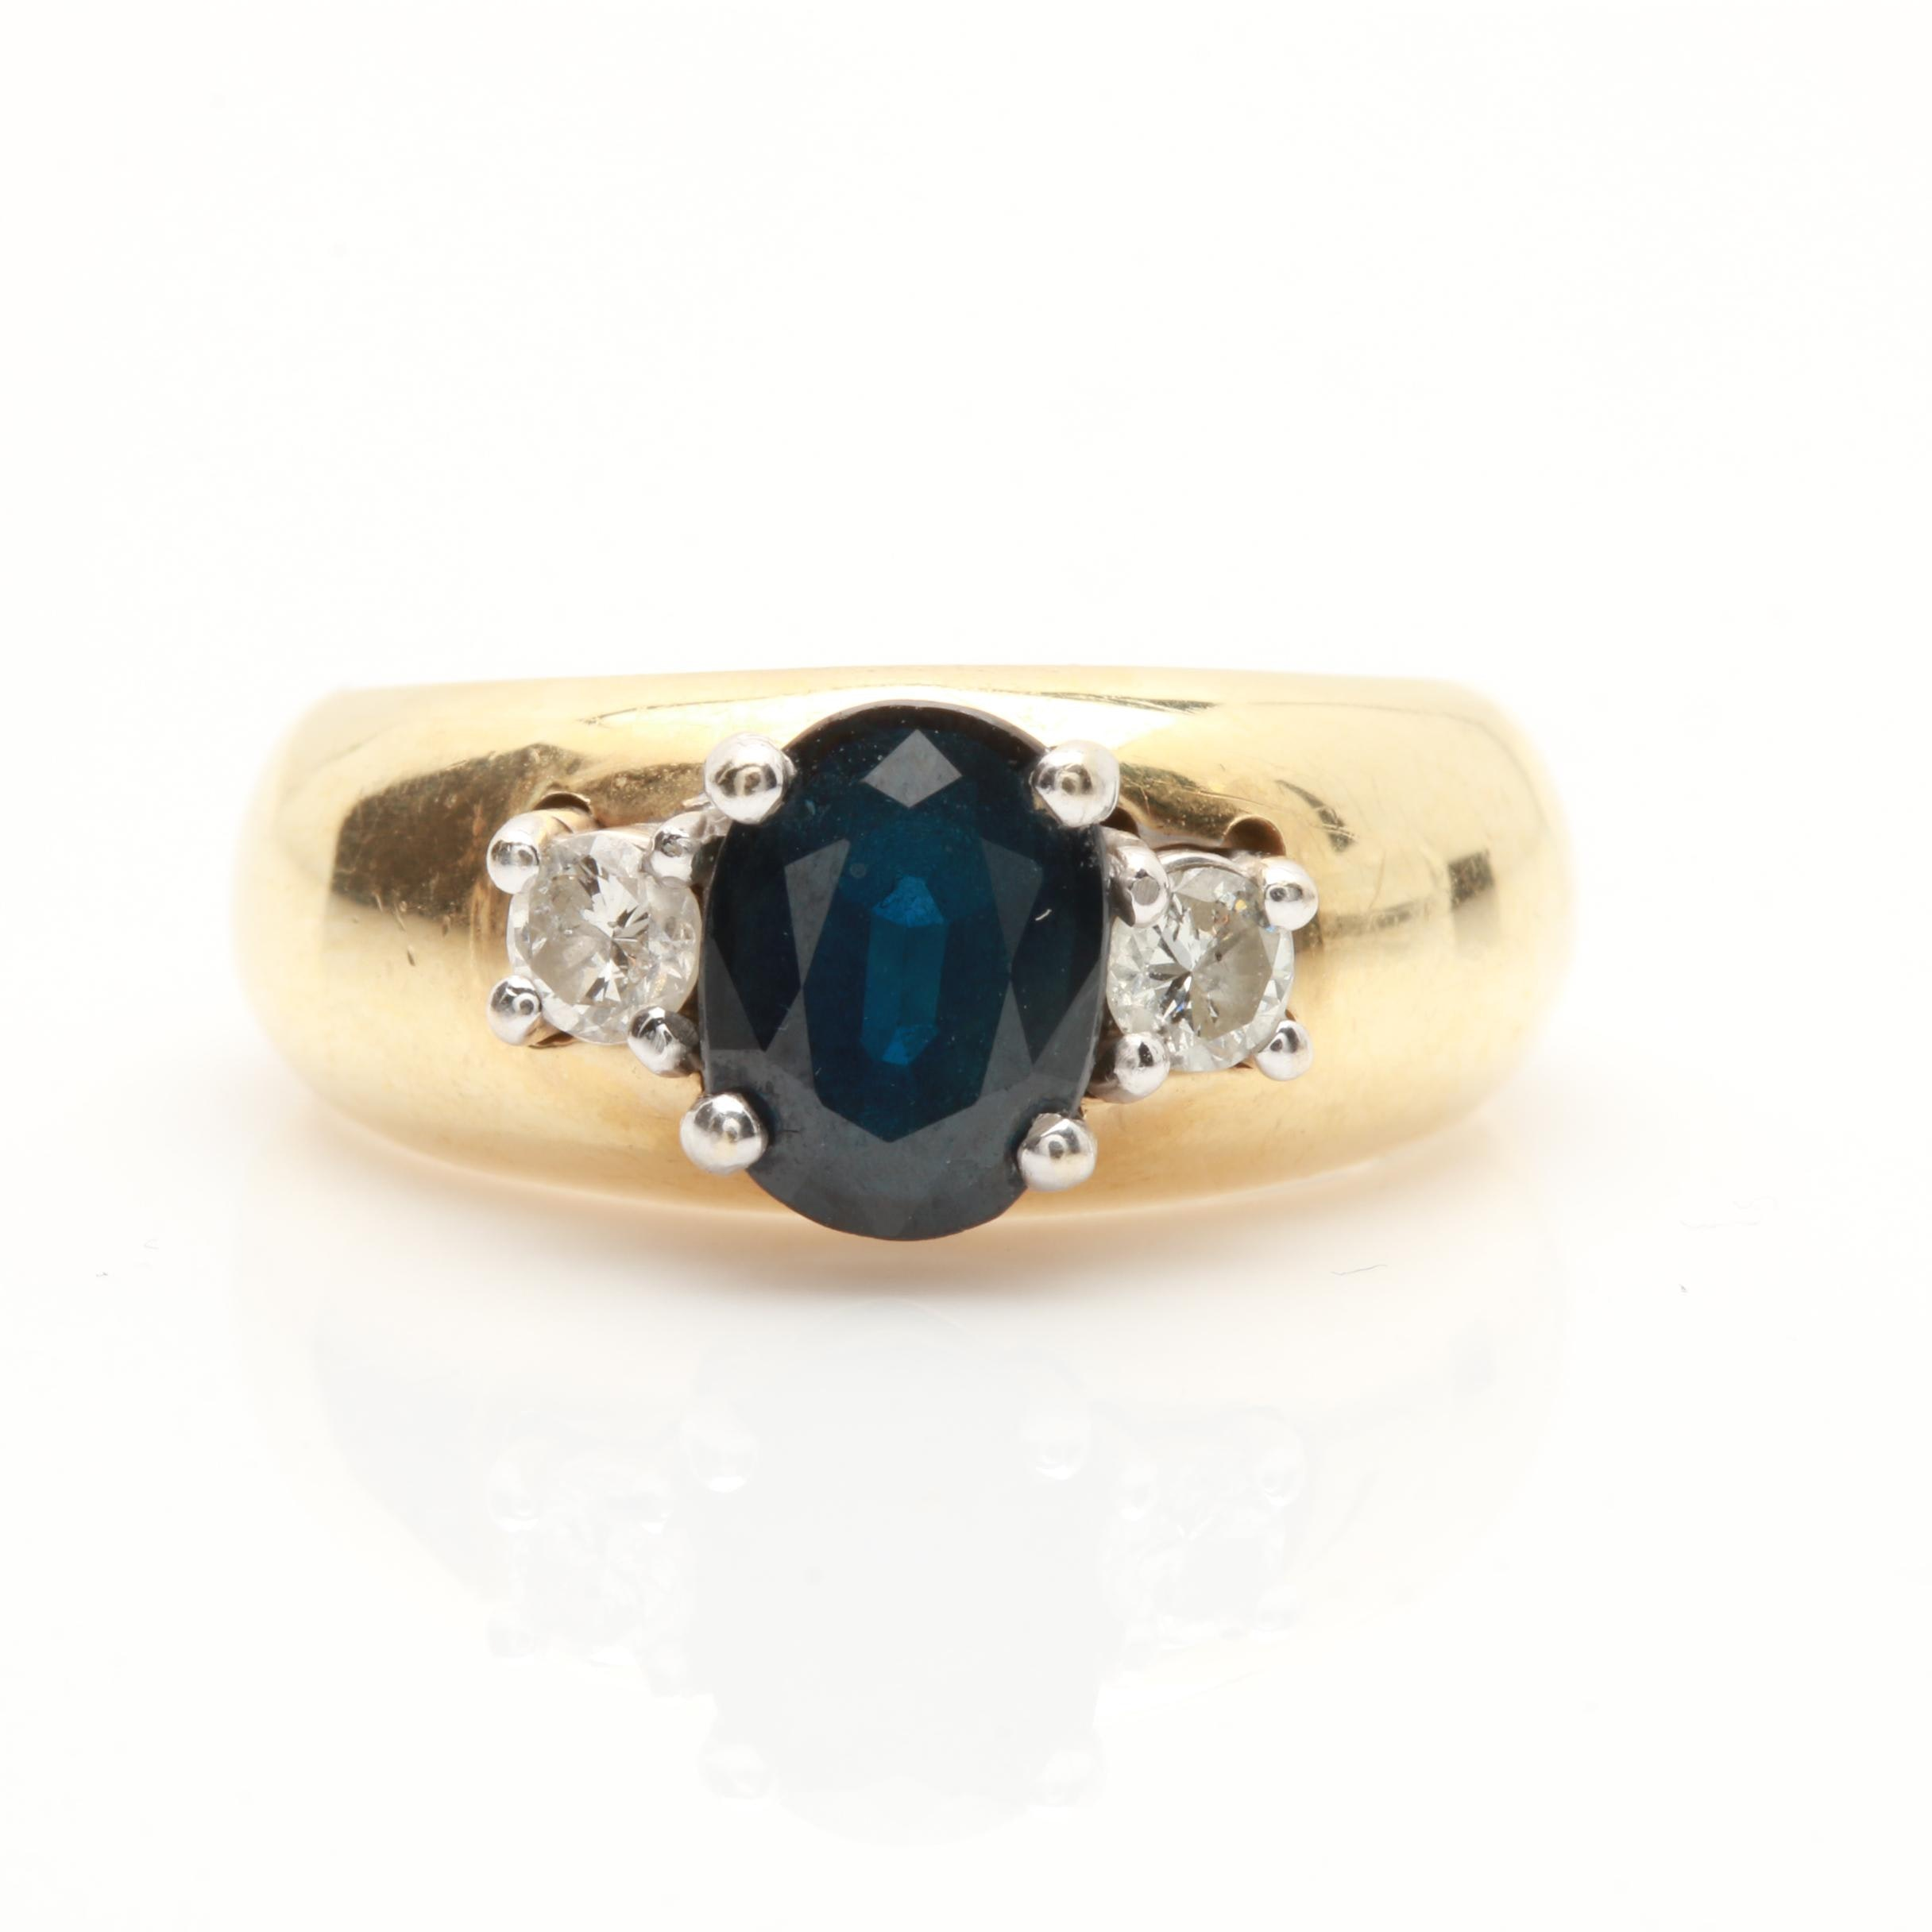 14K Yellow Gold 1.34 CT Sapphire and Diamond Ring with White Gold Accent